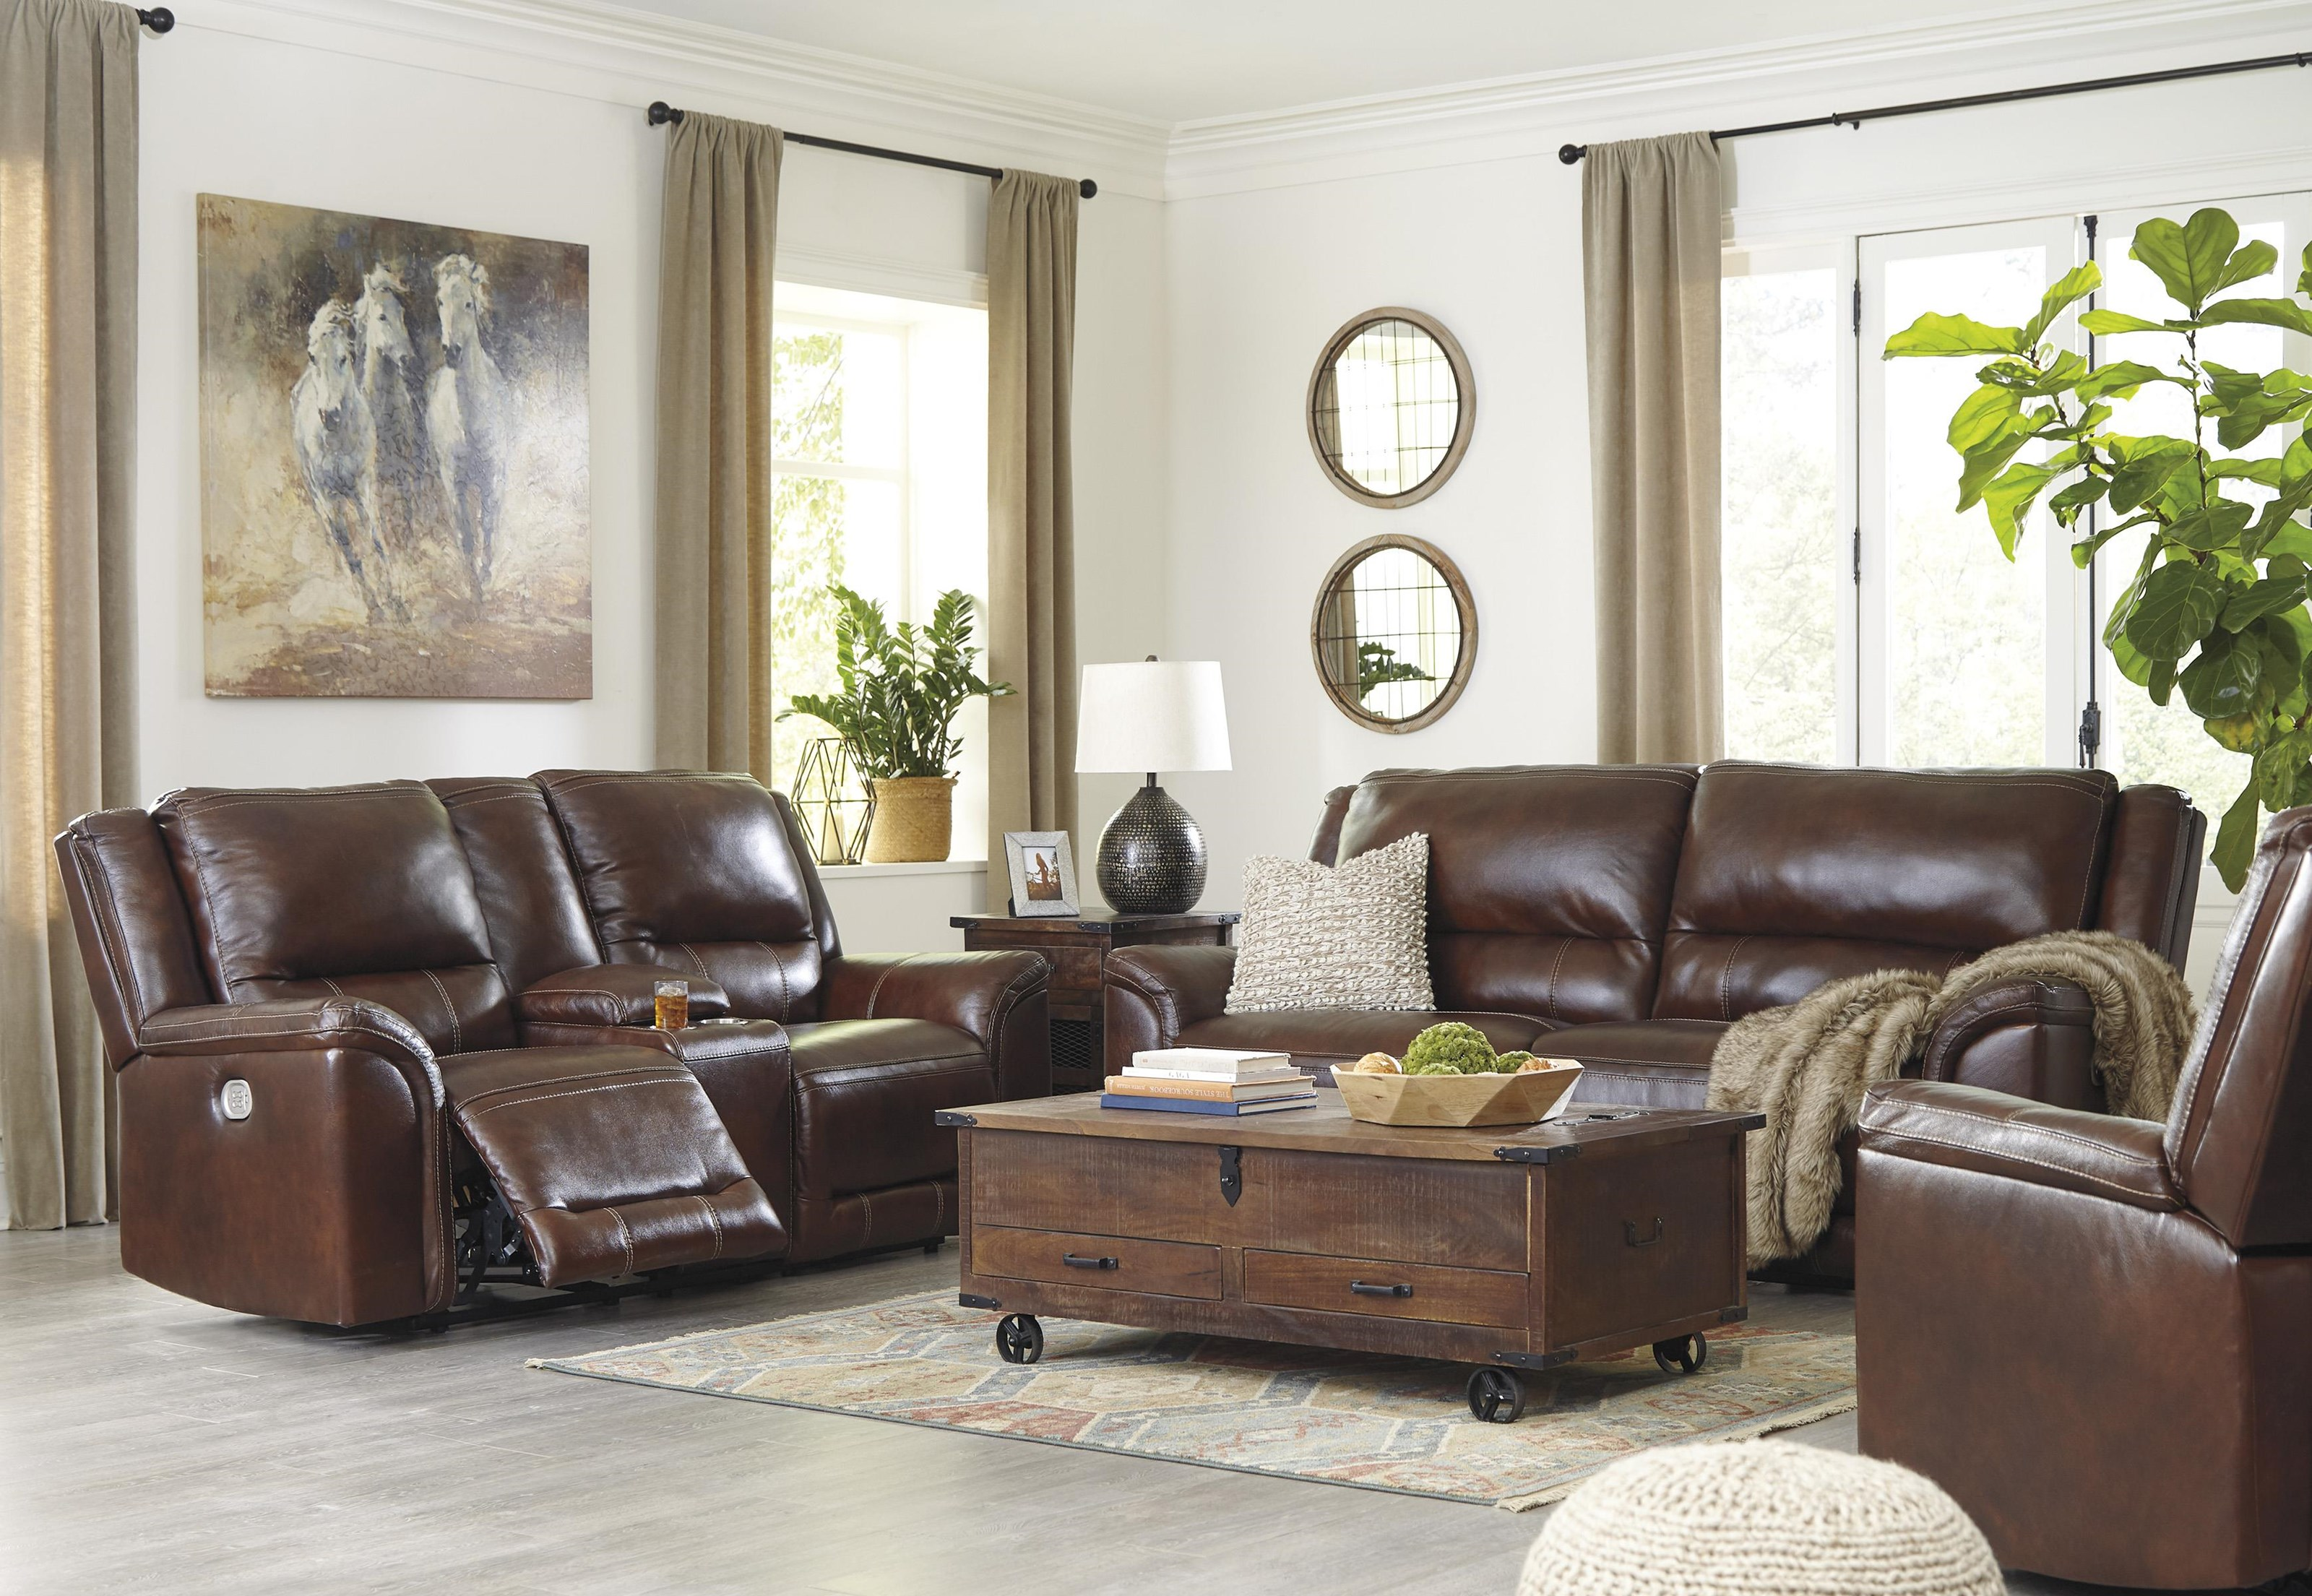 Catanzaro 2 Piece Power Reclining Living Room Set by Signature Design by Ashley at Sam Levitz Outlet